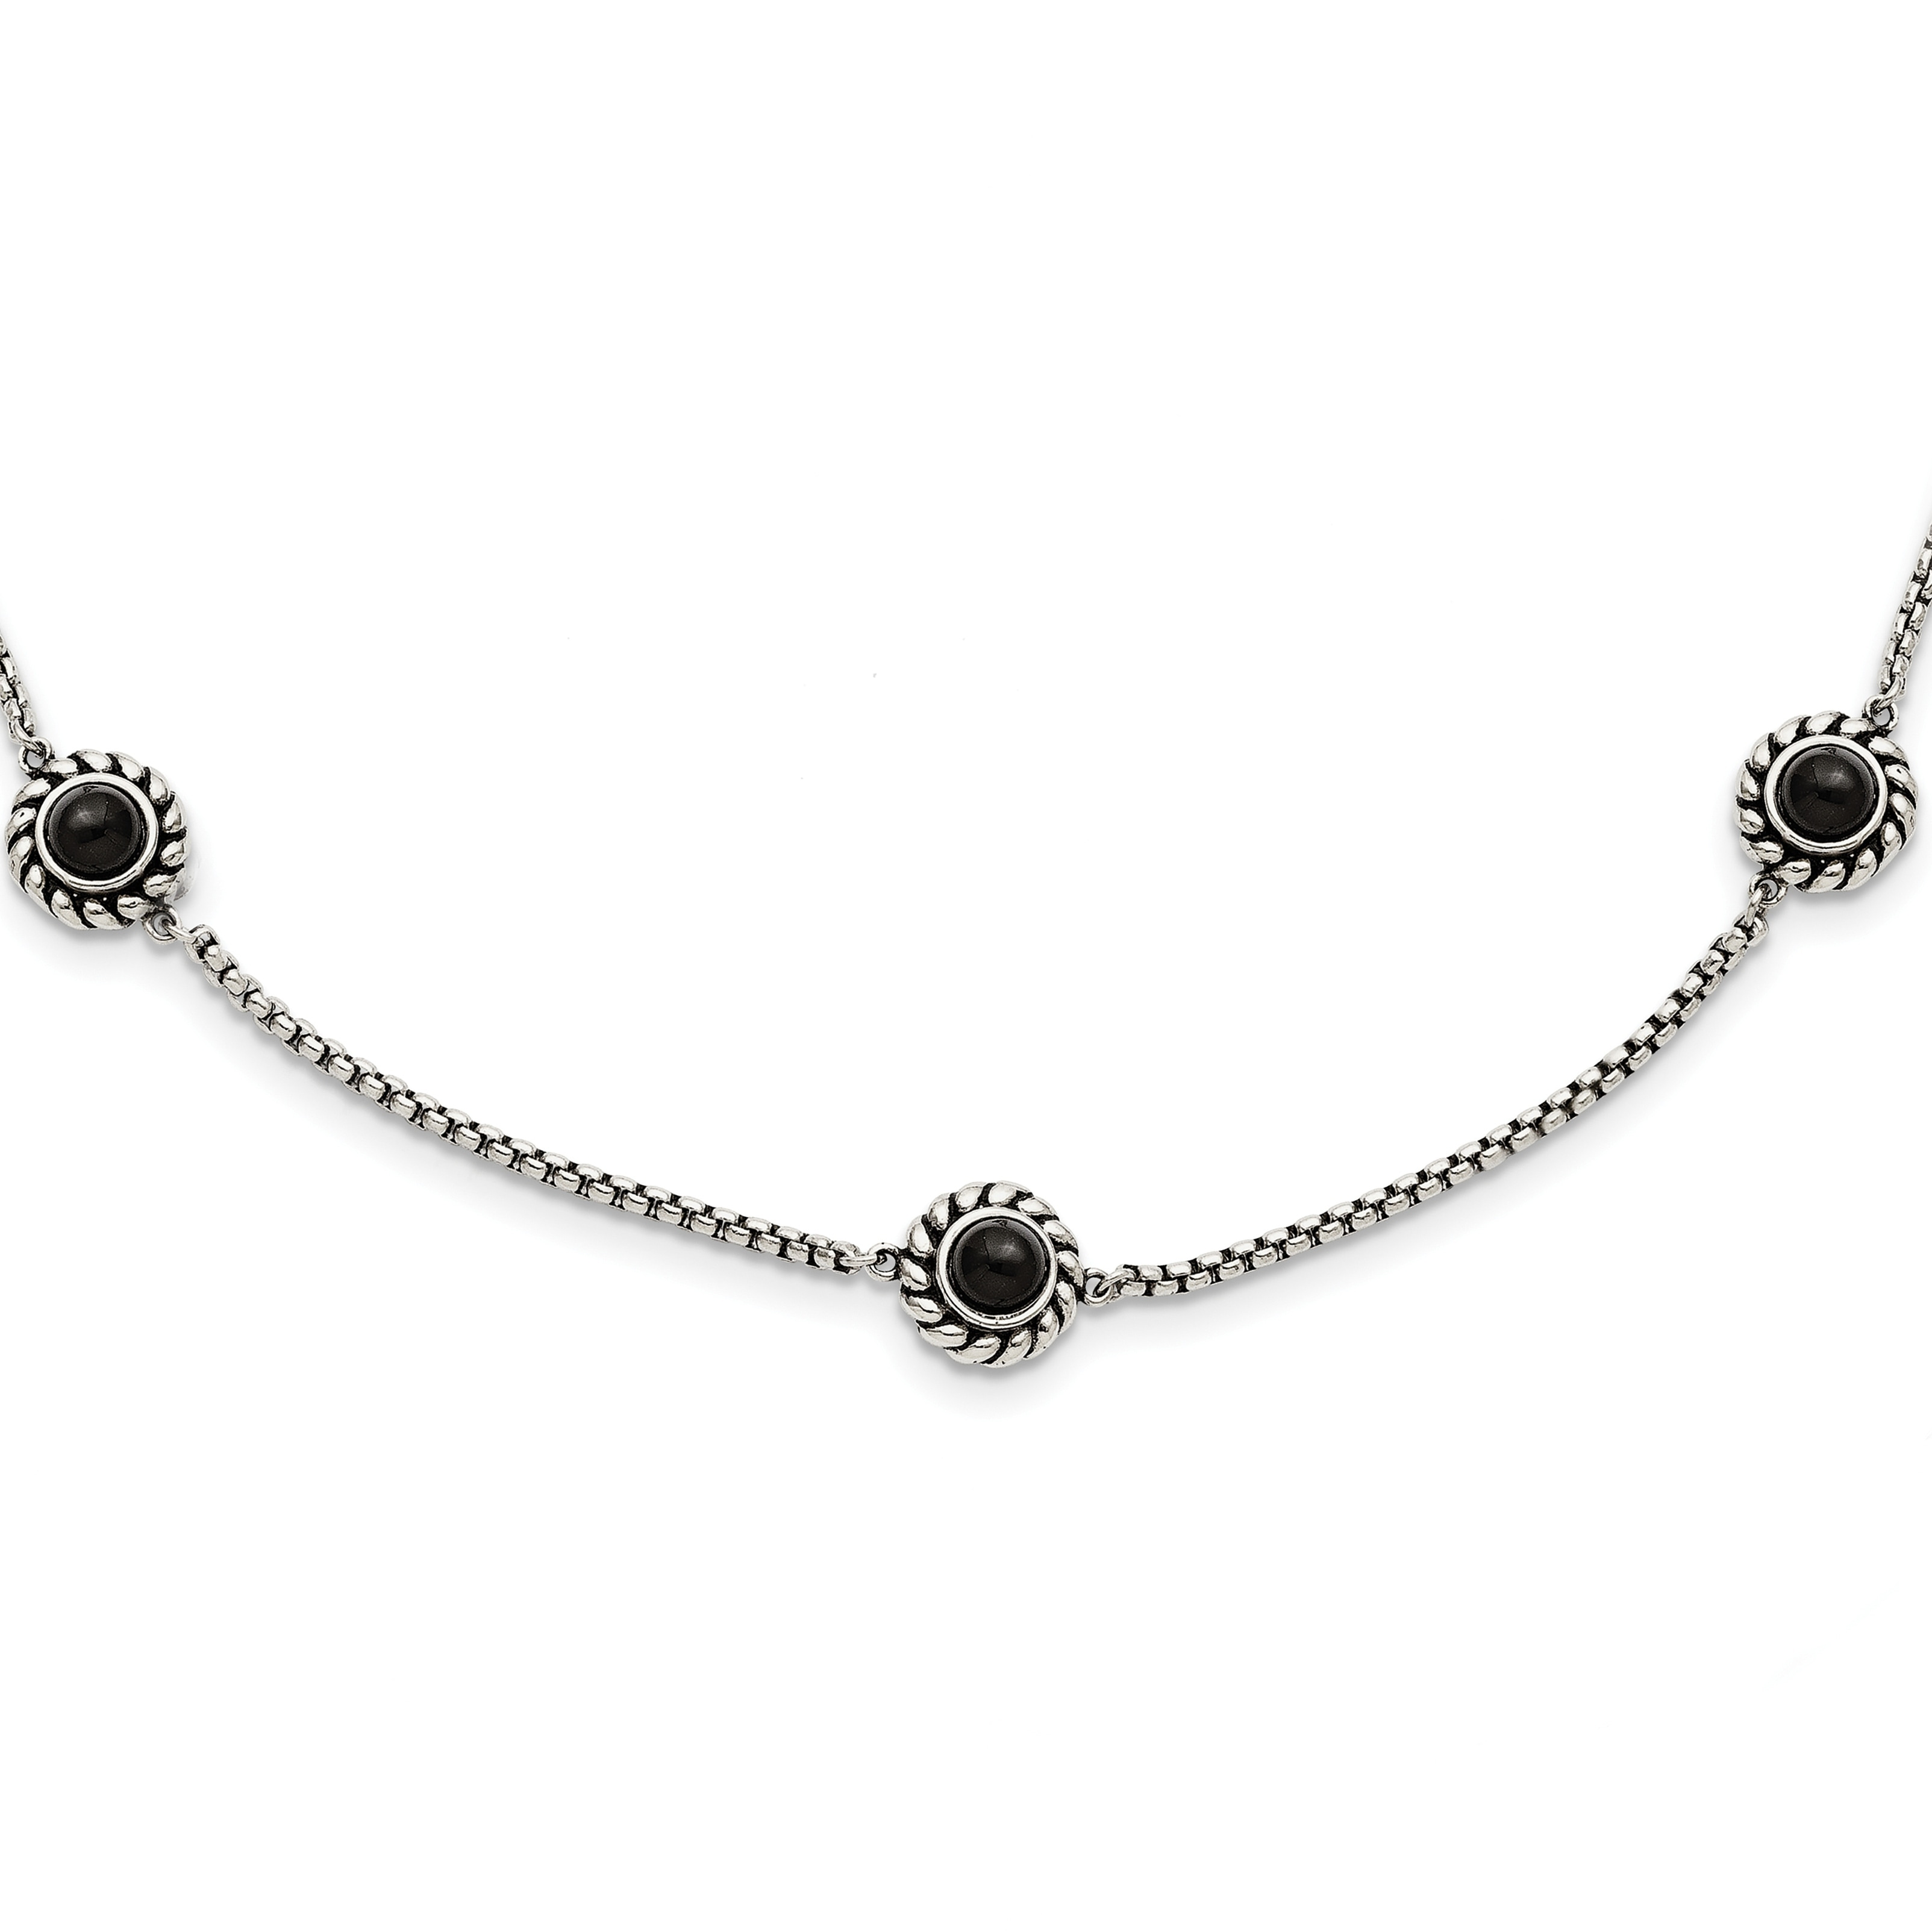 6ff086bf6c53c Chisel Stainless Steel CZ and Black Onyx Reversible with 3.5-inch Extension  Necklace